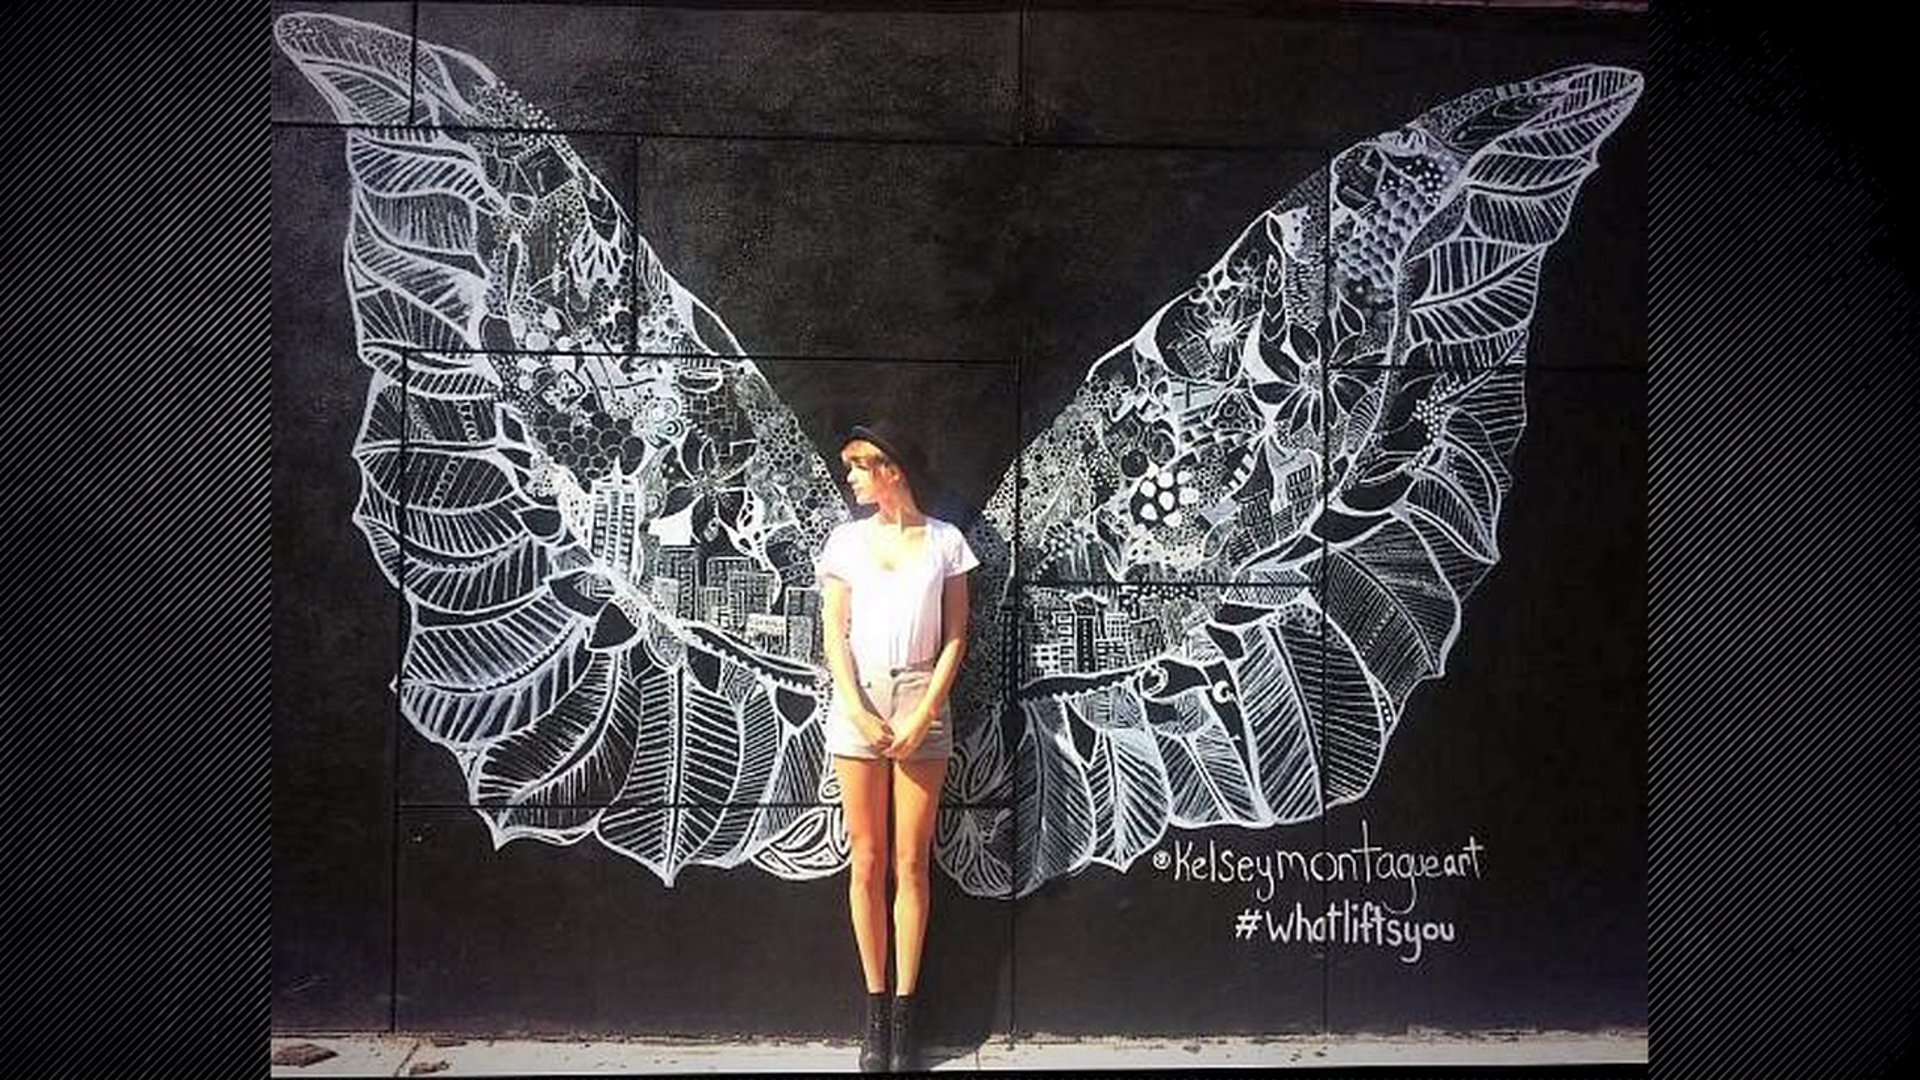 Famous American singer-songwriter   Taylor Swift in front of one of Kelsey Montague's wings murals in New York City. Taylor Swift posted this image on her own Instagram and got 900,000 Likes so far.